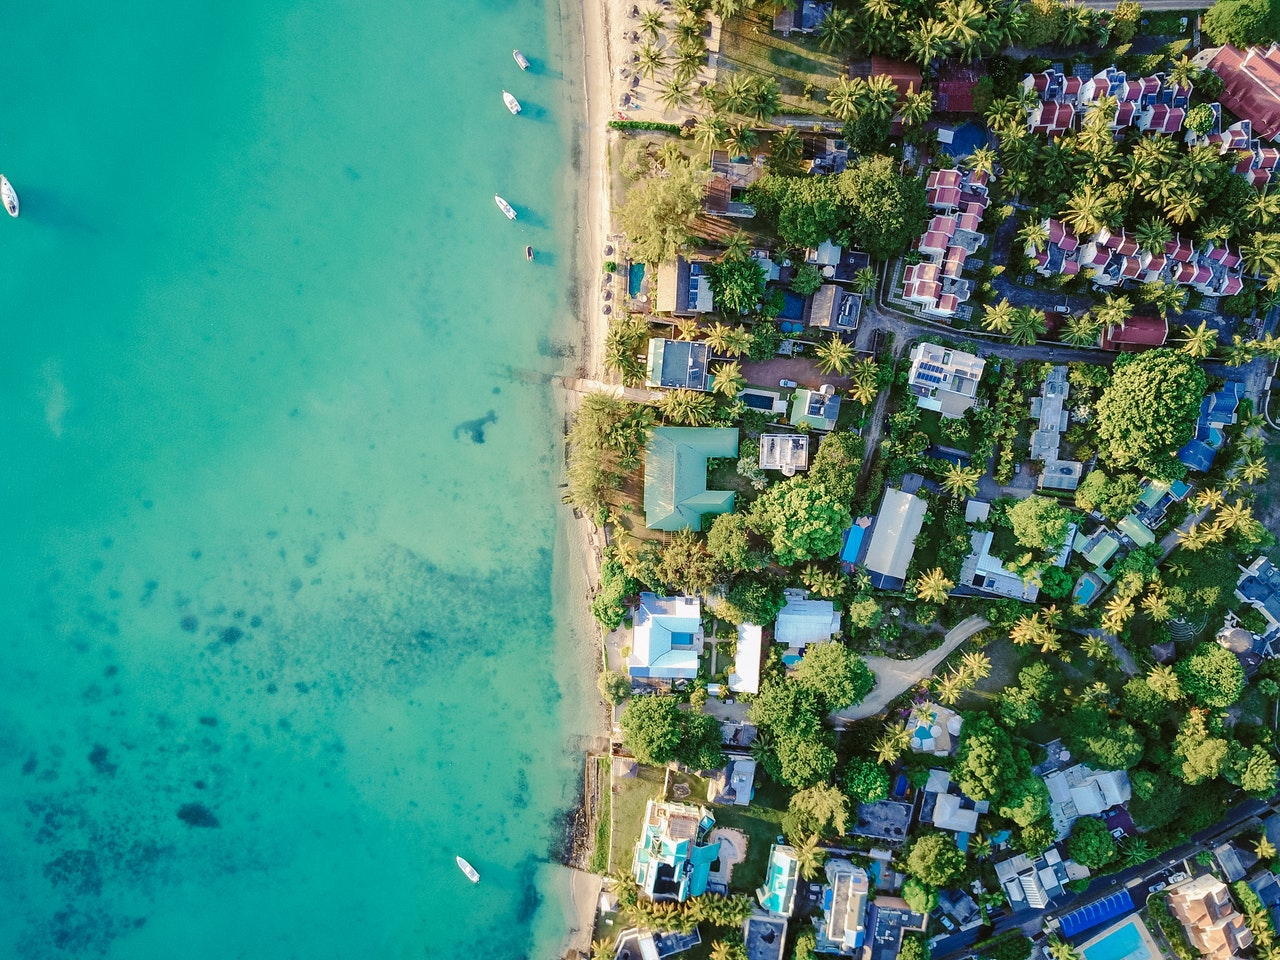 aerial-architecture-beach-boats-417351